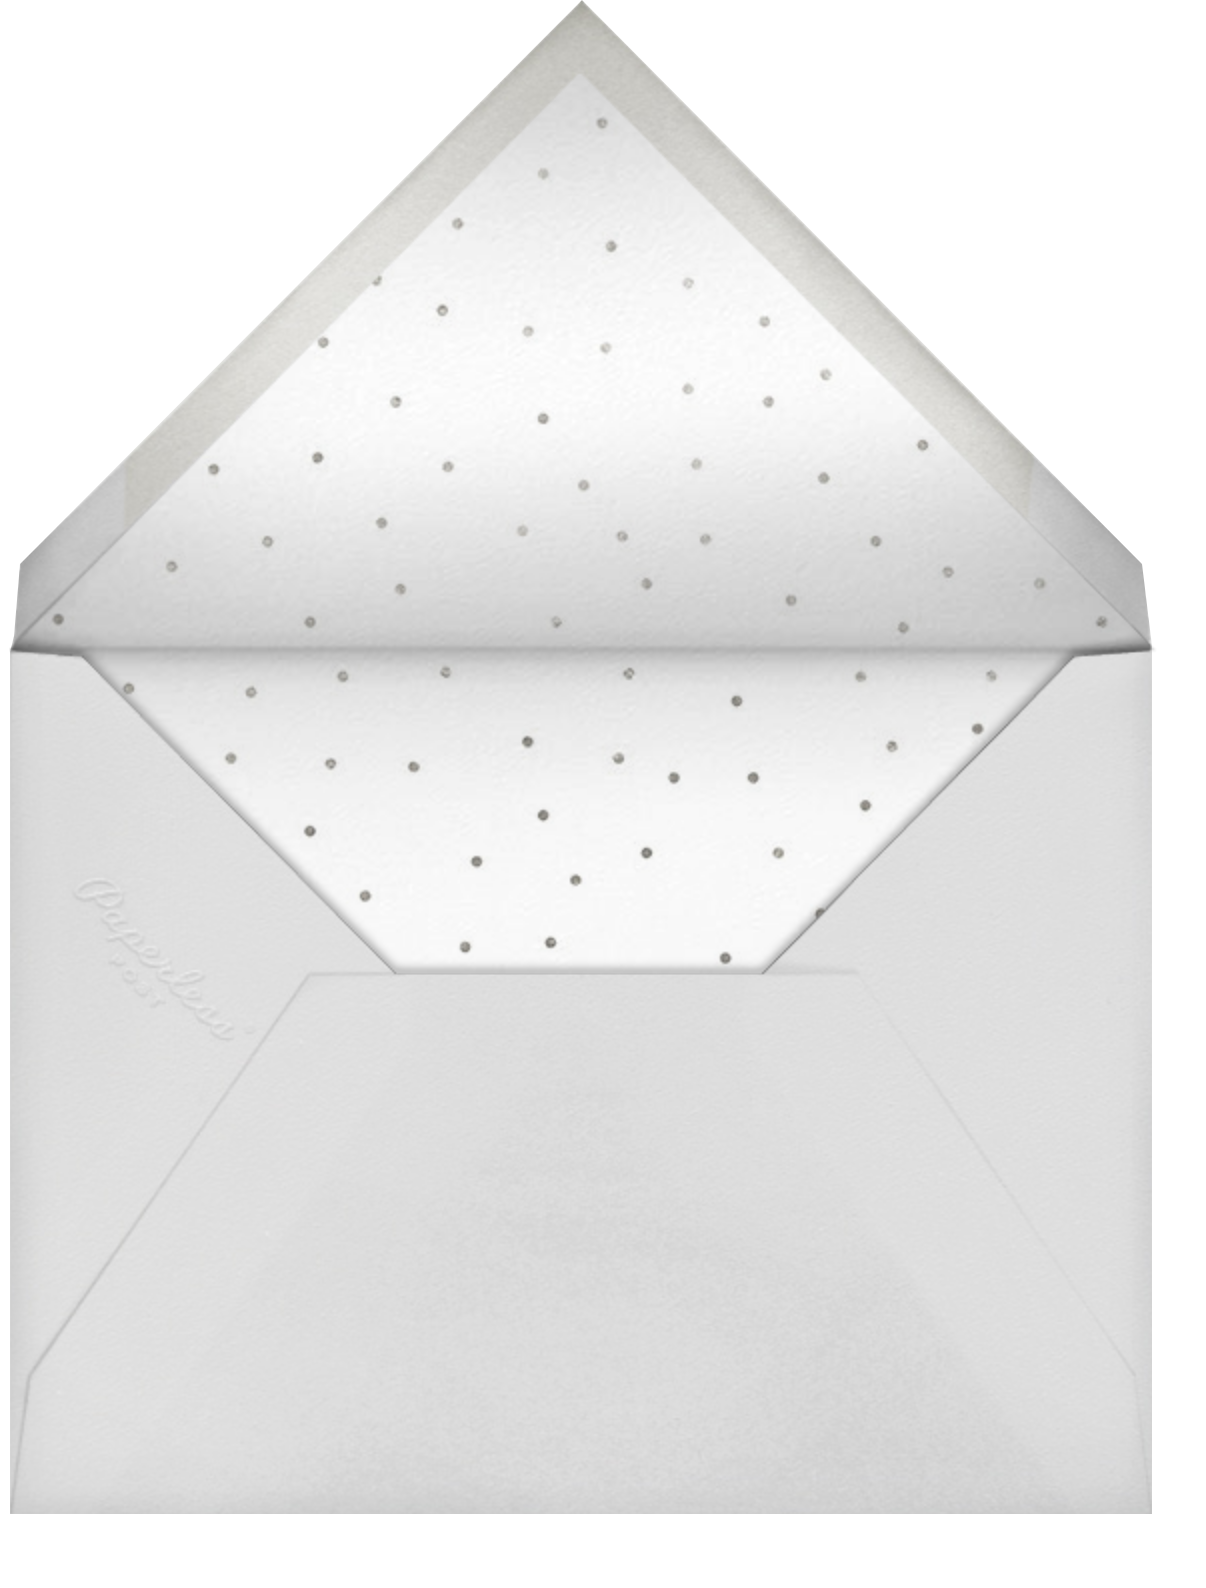 Mr. Snowman - Paperless Post - Holiday cards - envelope back